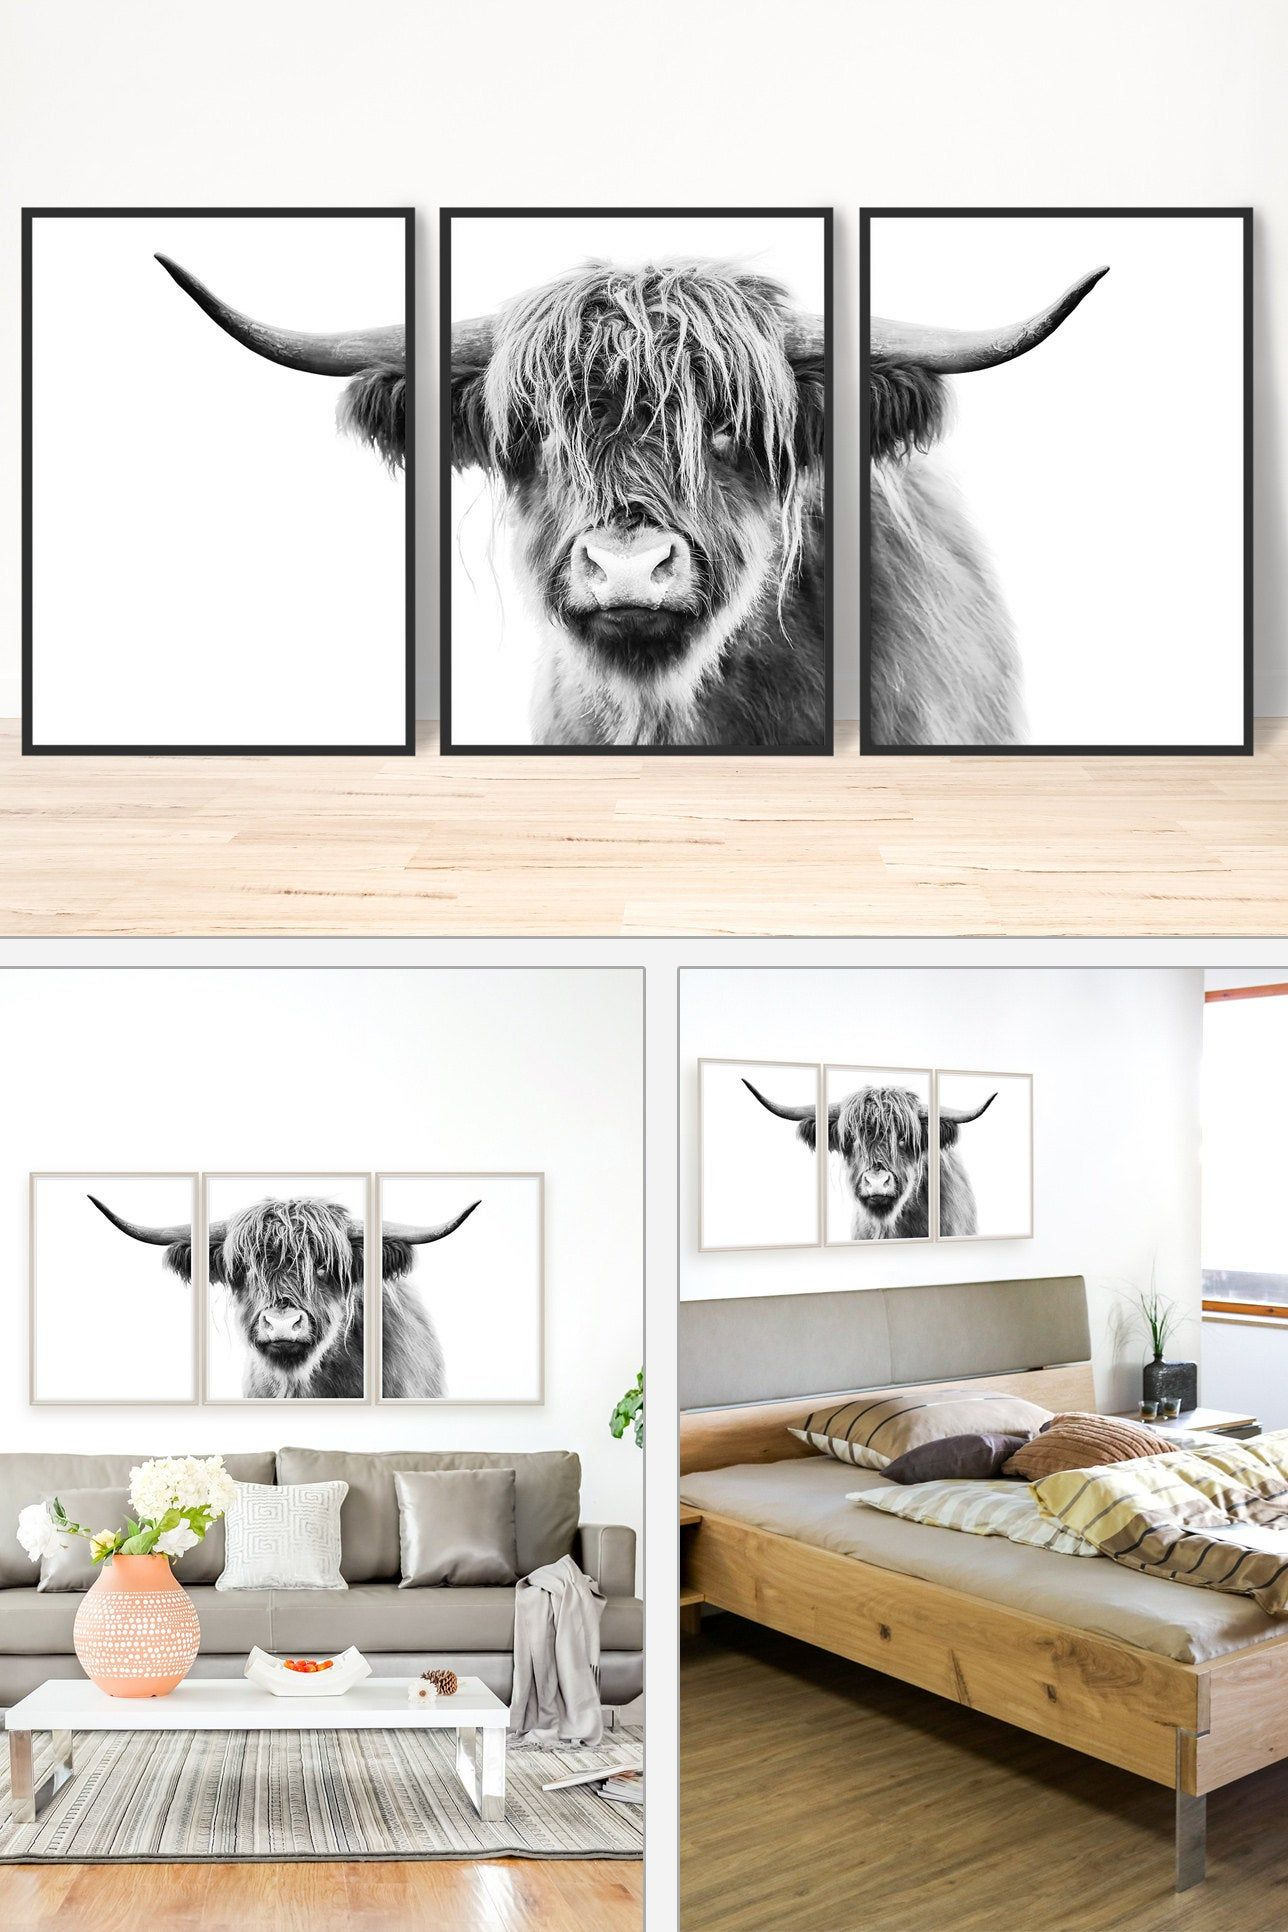 Large Highland Cow Print Black And White Cow Art Farm Animal Photography Prints Large Wall Art Boho Decor Modern Farmhouse Decor Wall Art Prints Living Room Cow Art Print Highland Cow